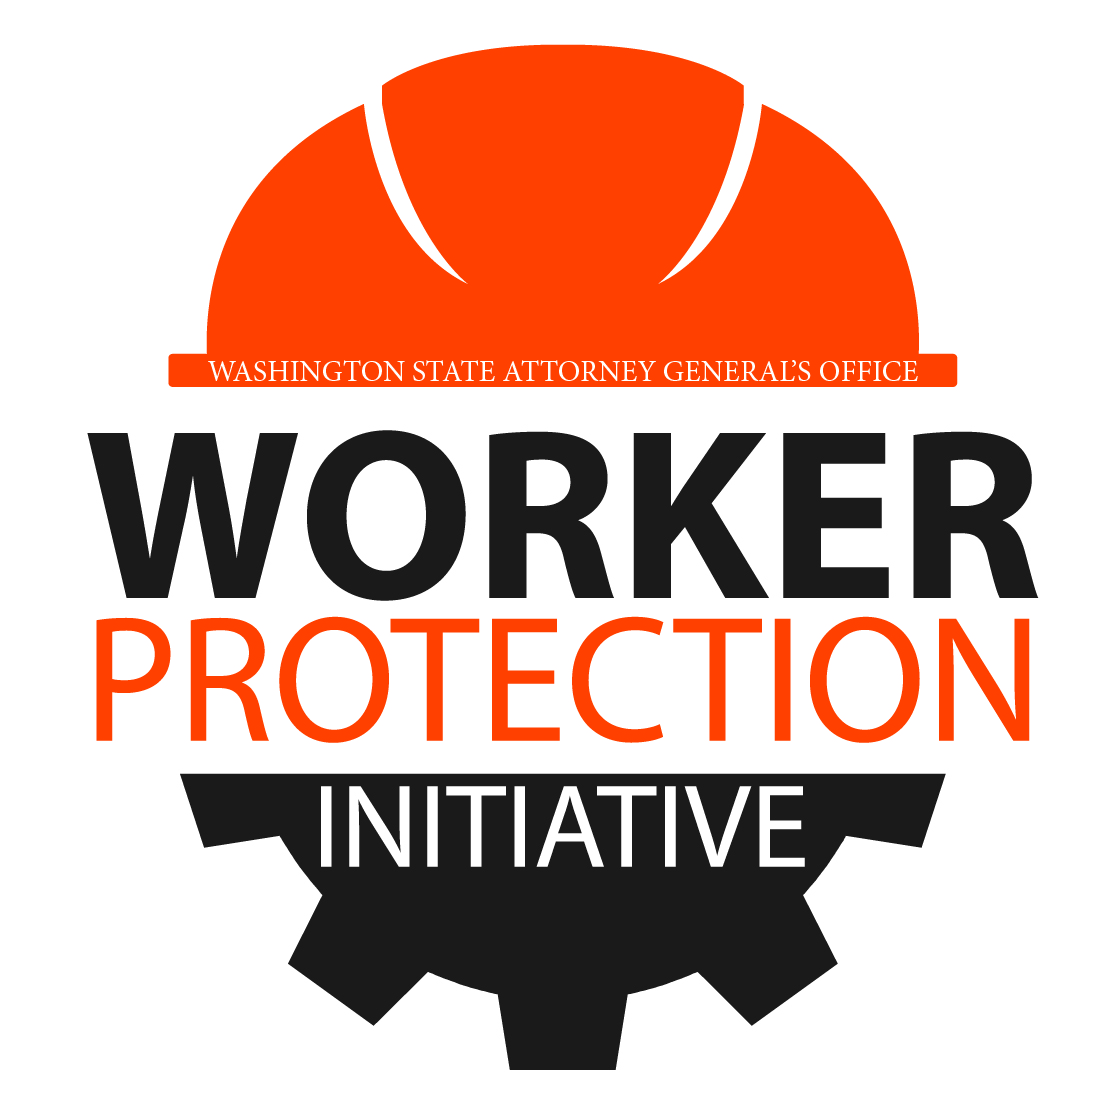 Worker Protection initiative logo